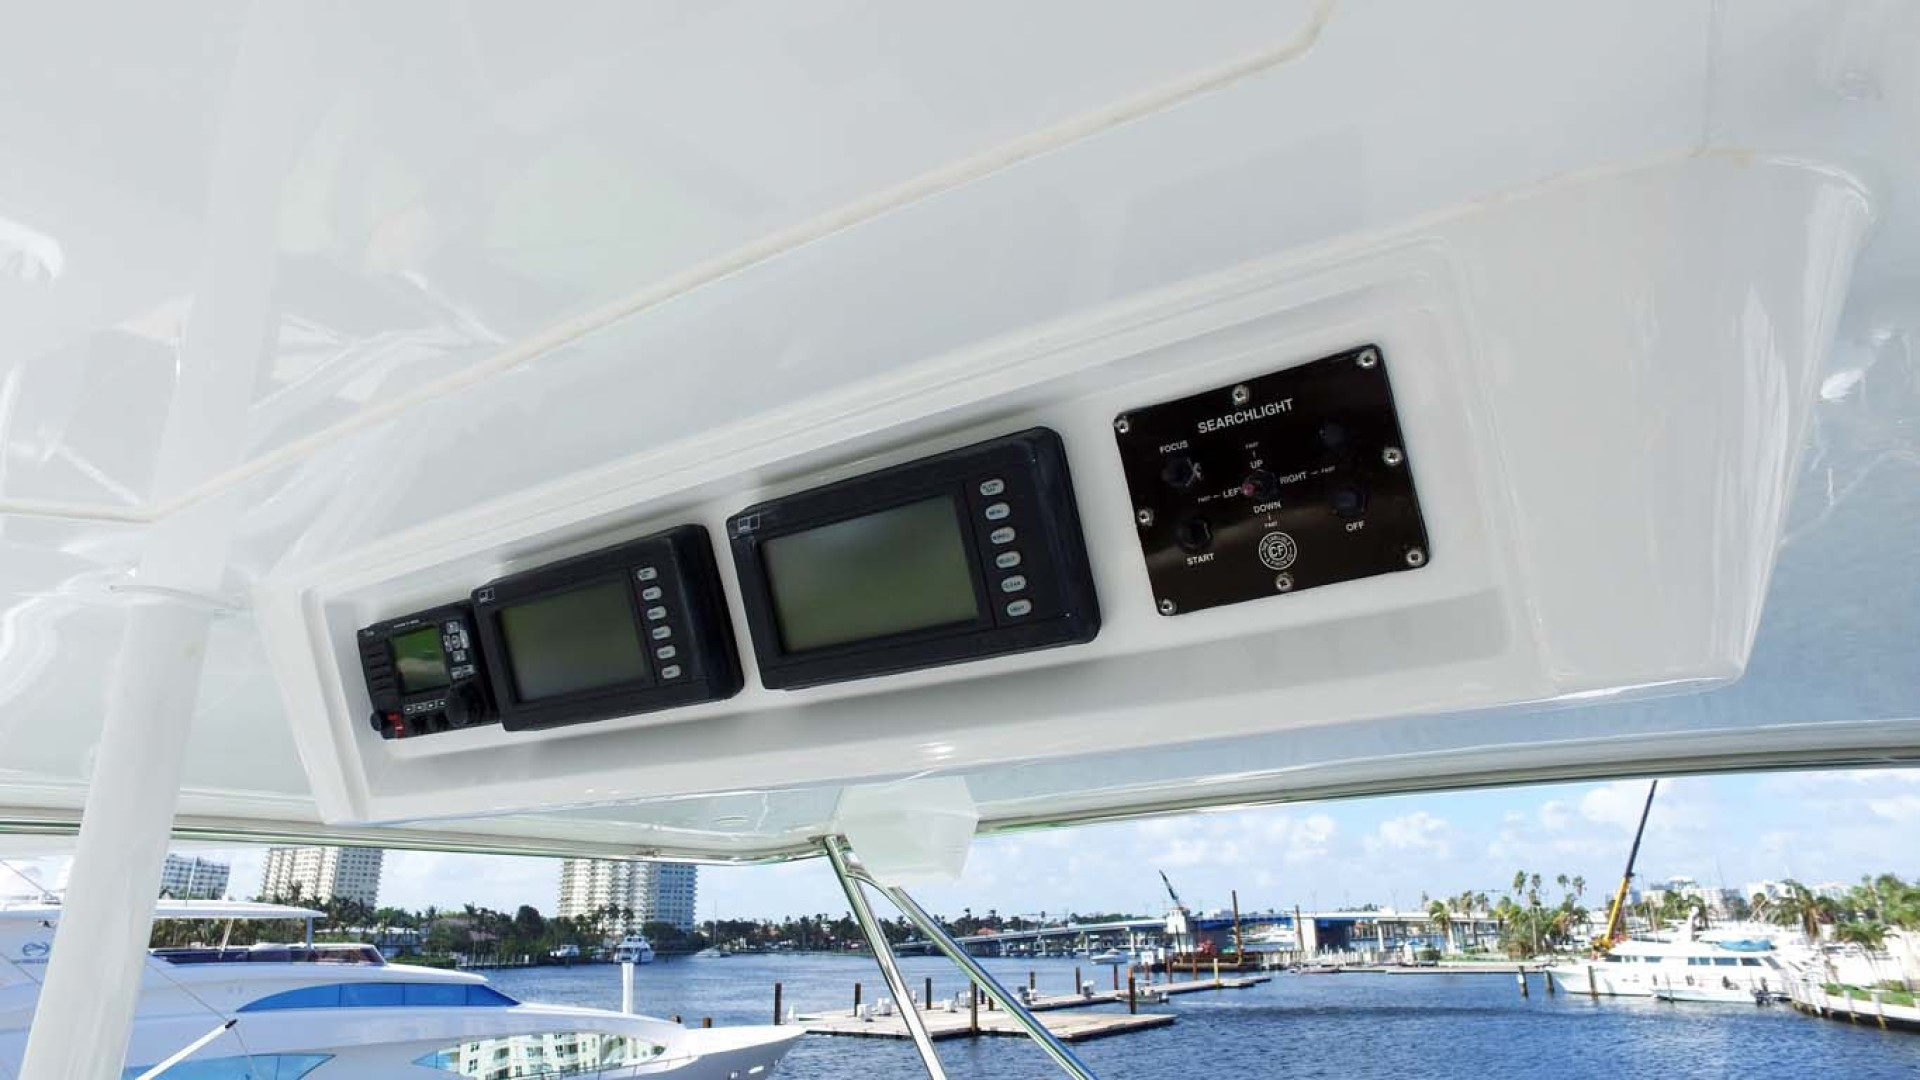 Sea-Force-IX-Sport-Fisherman-2010-Silky-Palm-Beach-Florida-United-States-Overhead-Electronics-1078929